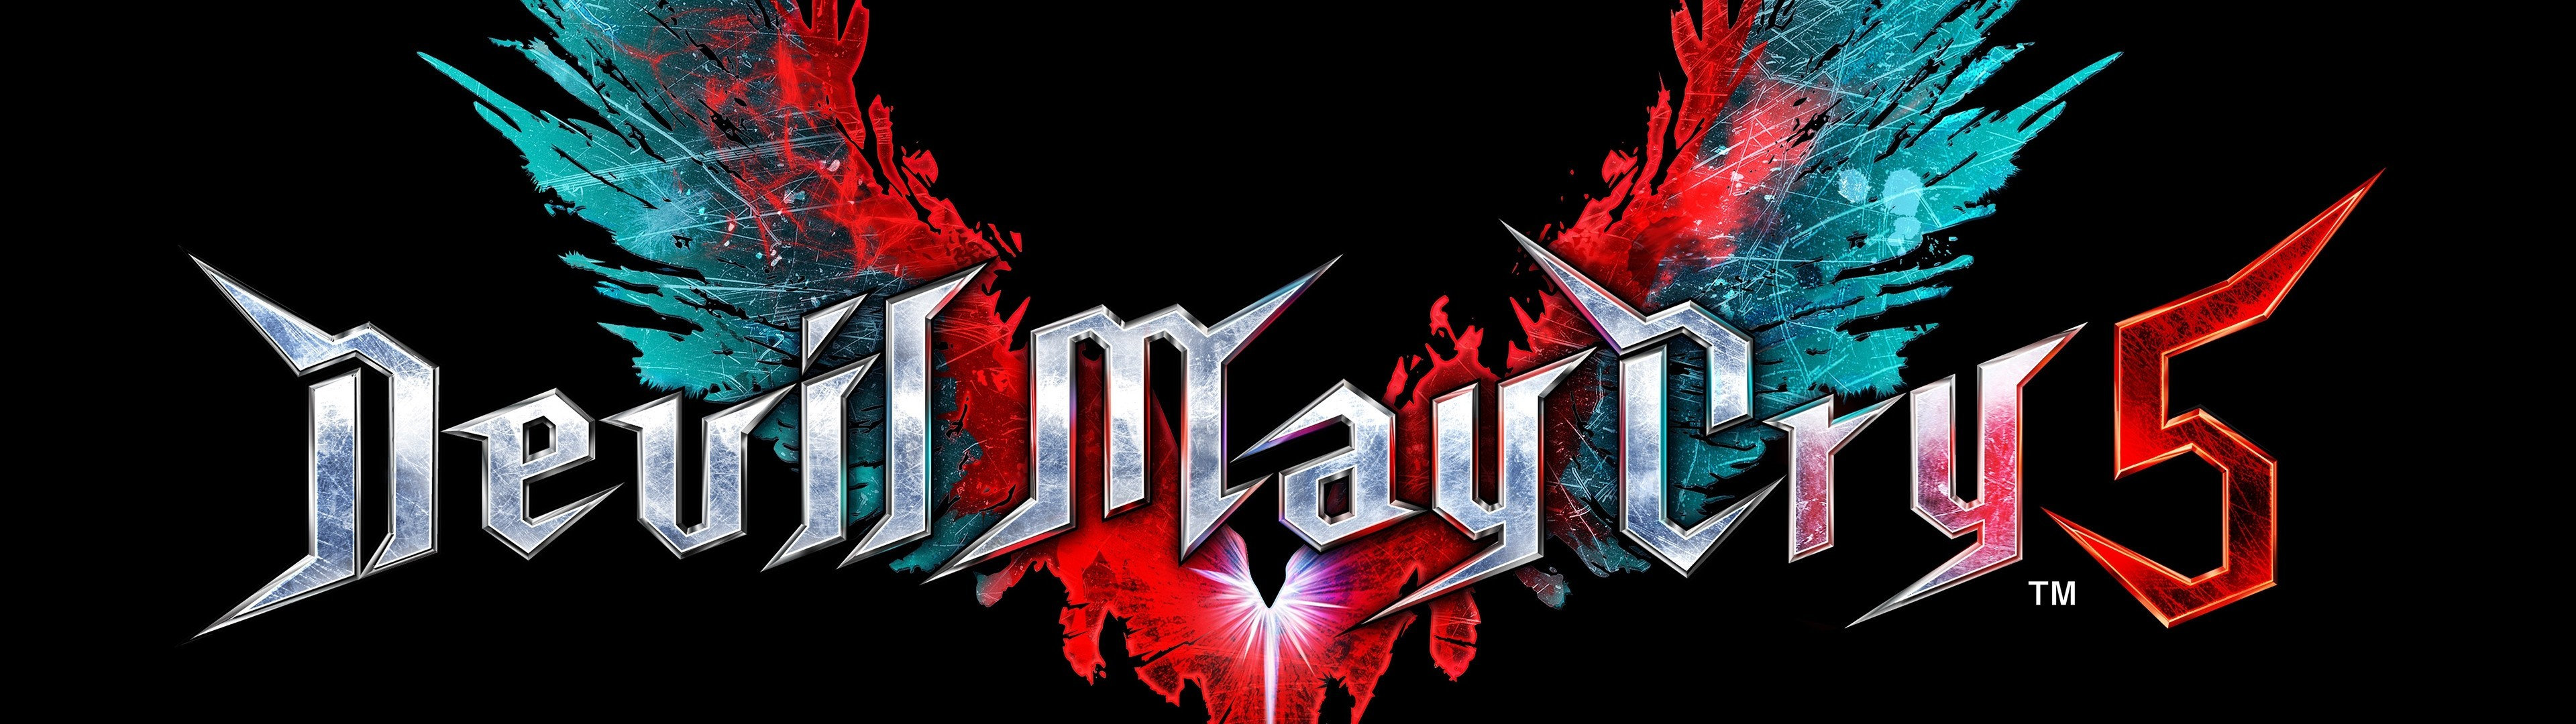 Download 3840x1080 Devil May Cry 5, Logo Wallpapers.